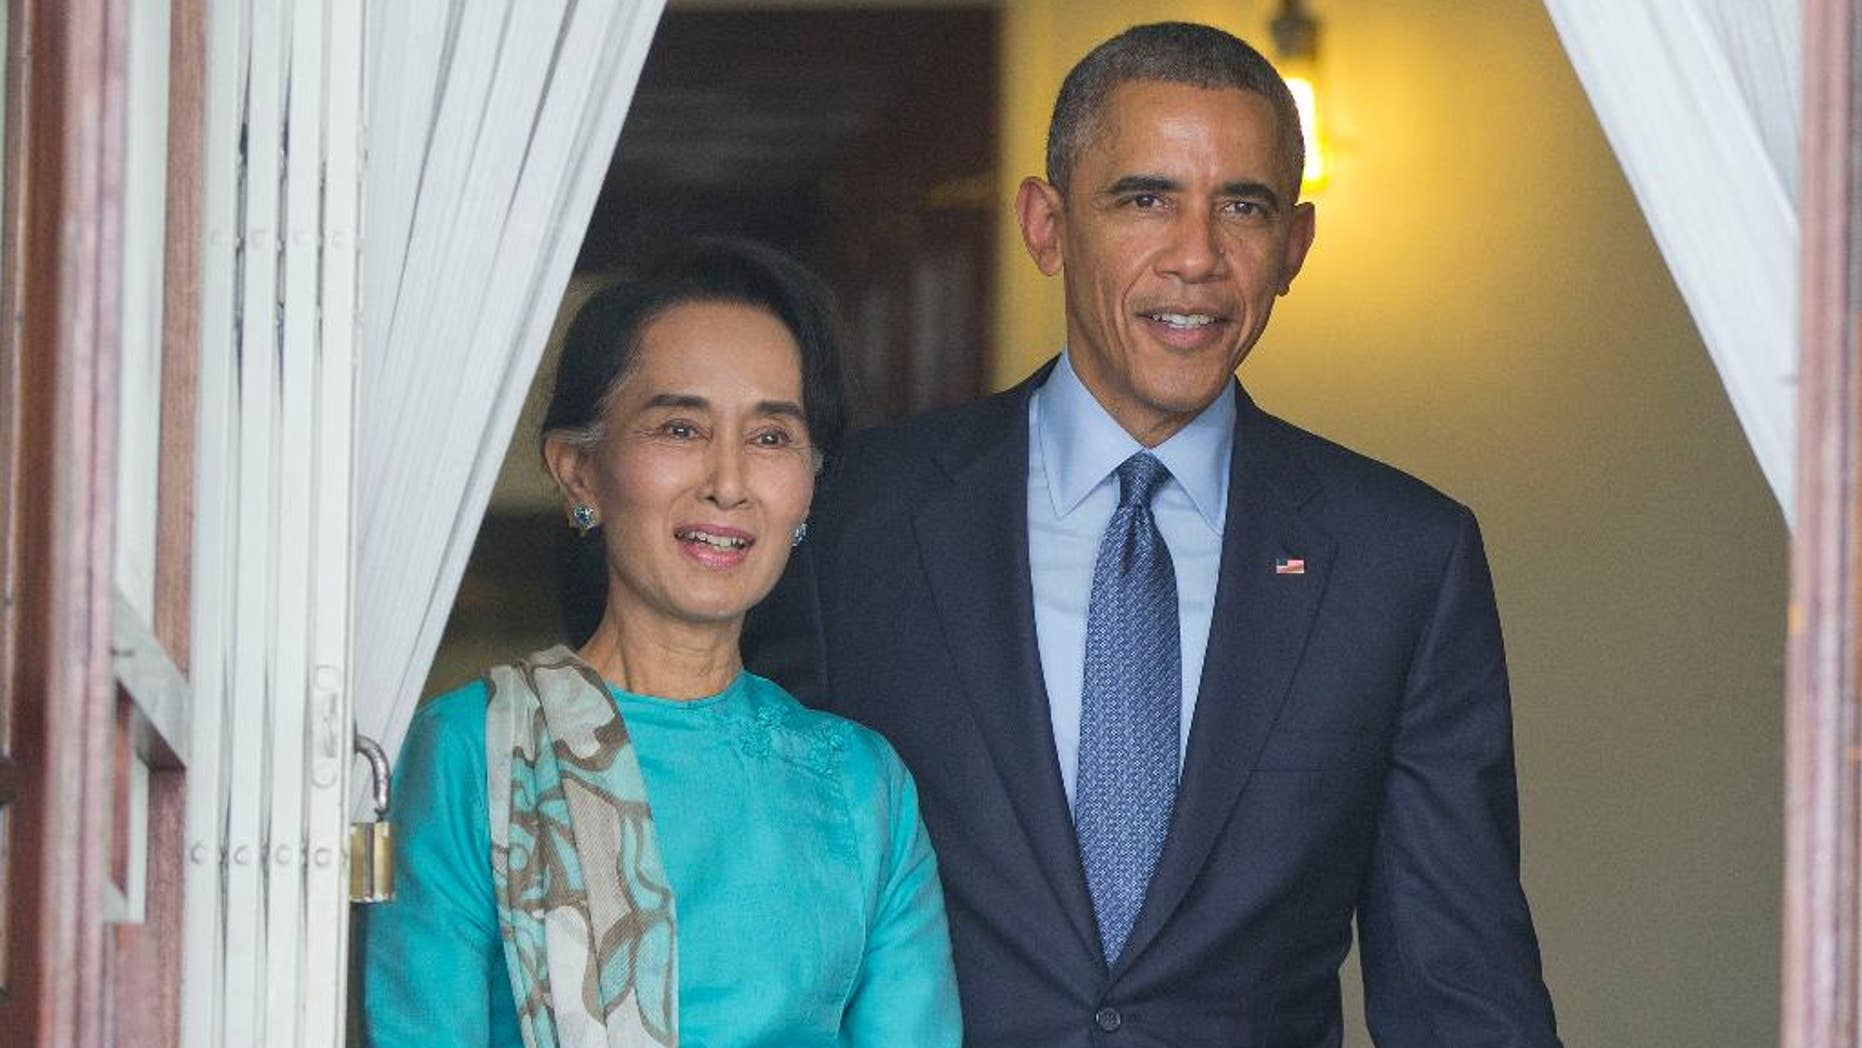 FILE - In this Nov. 14, 2014 file photo, President Barack Obama walks with Myanmar's opposition leader Aung San Suu Kyi for their joint news conference at her home in Yangon, Myanmar. Human rights advocates and some lawmakers say the United States is sending the wrong signal by opening the door for broader cooperation with Myanmar's widely criticized military just weeks after President Barack Obama assured opposition leader Aung San Suu Kyi that closer ties weren't going to happen soon.  (AP Photo/Pablo Martinez Monsivais, File)